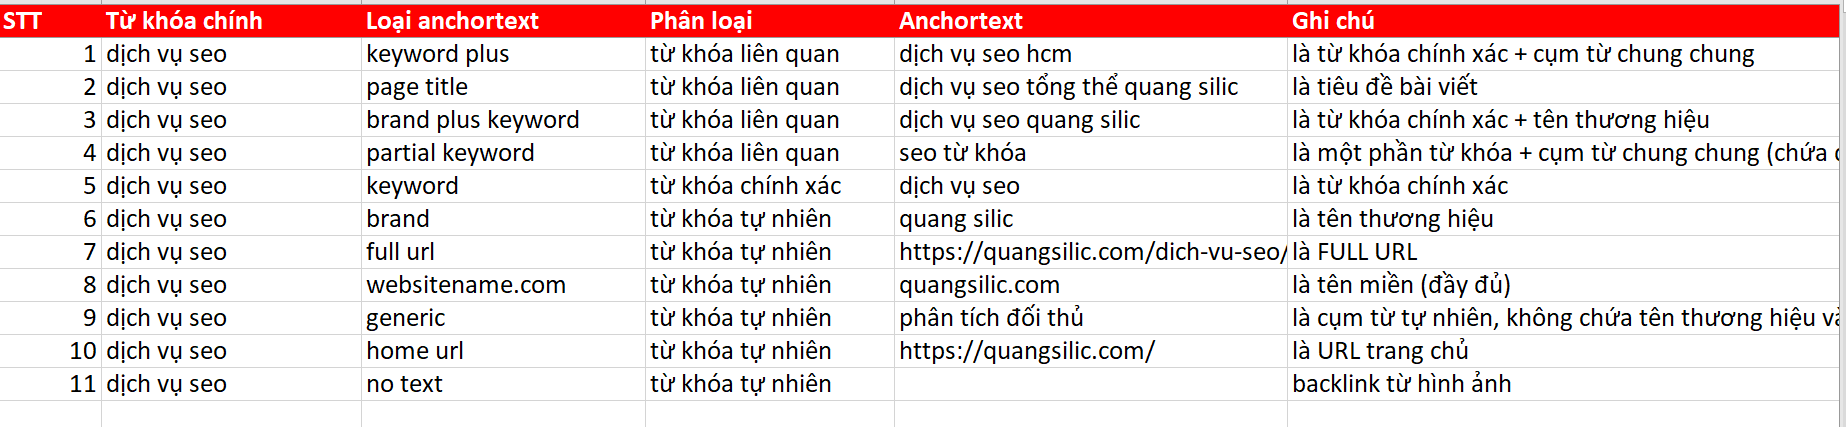 KINH NGHIỆM XÂY DỰNG LINK BUILDING 9